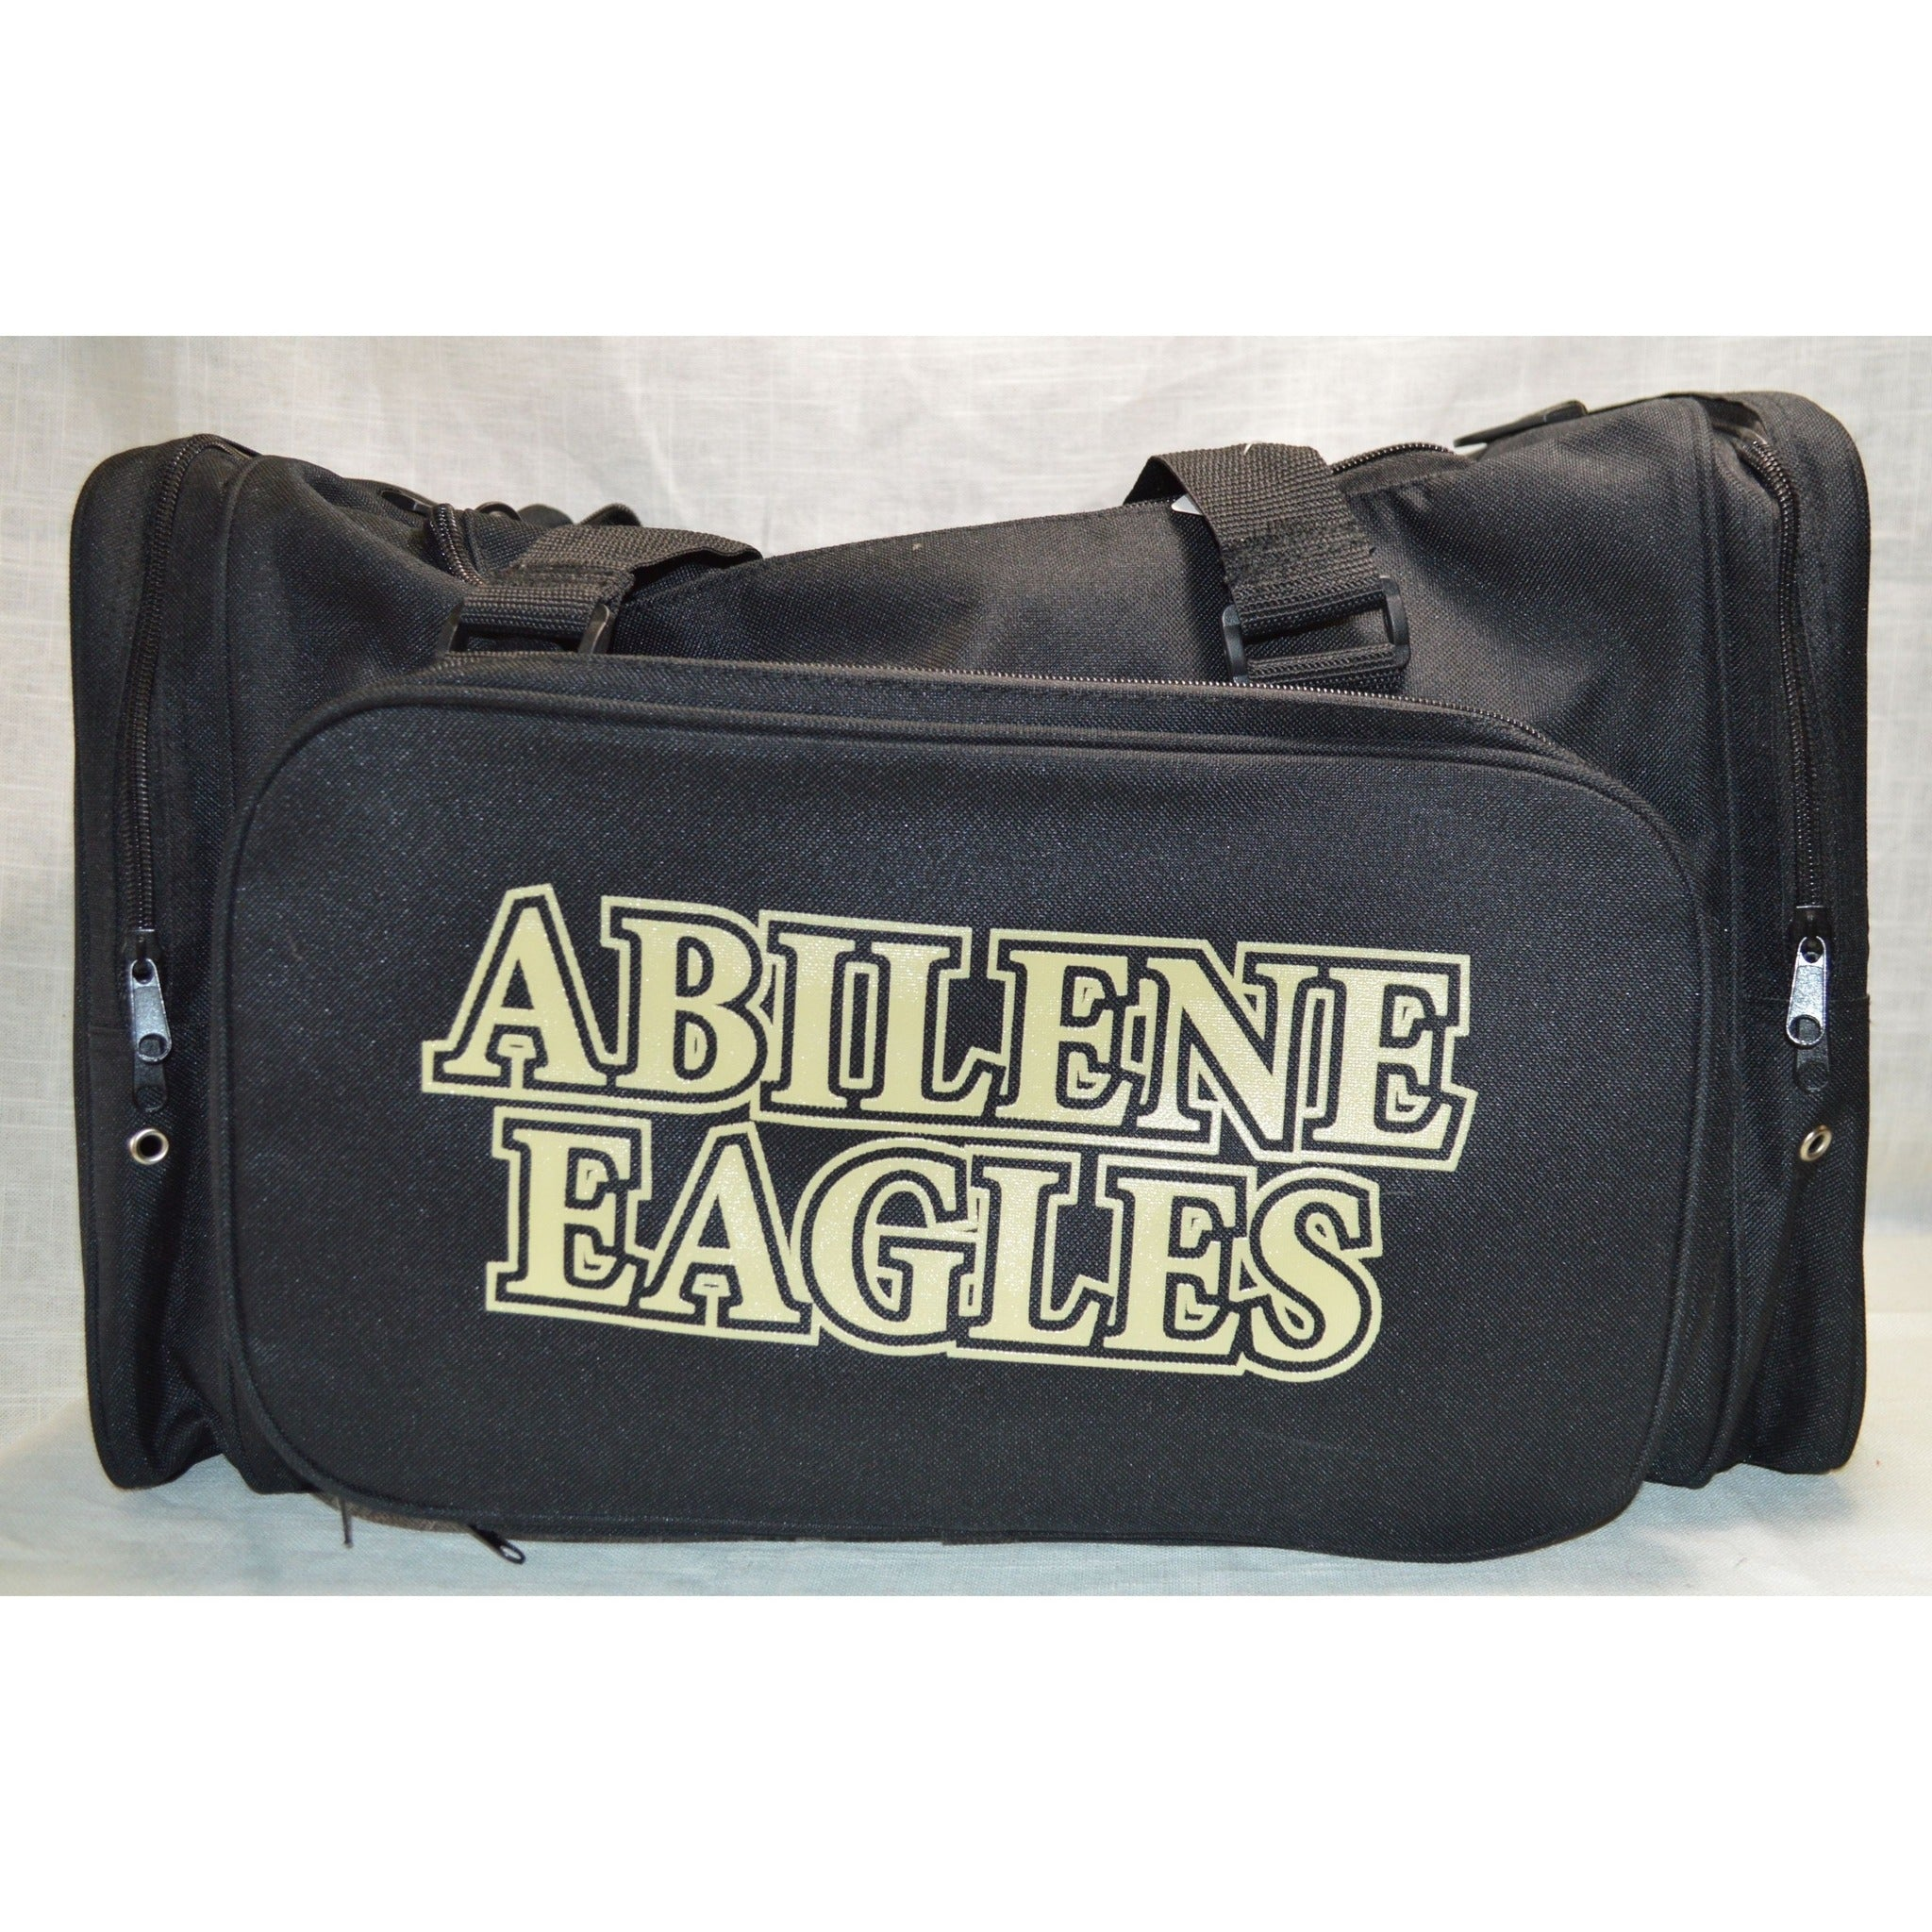 Abilene High Eagles - Duffle Bag